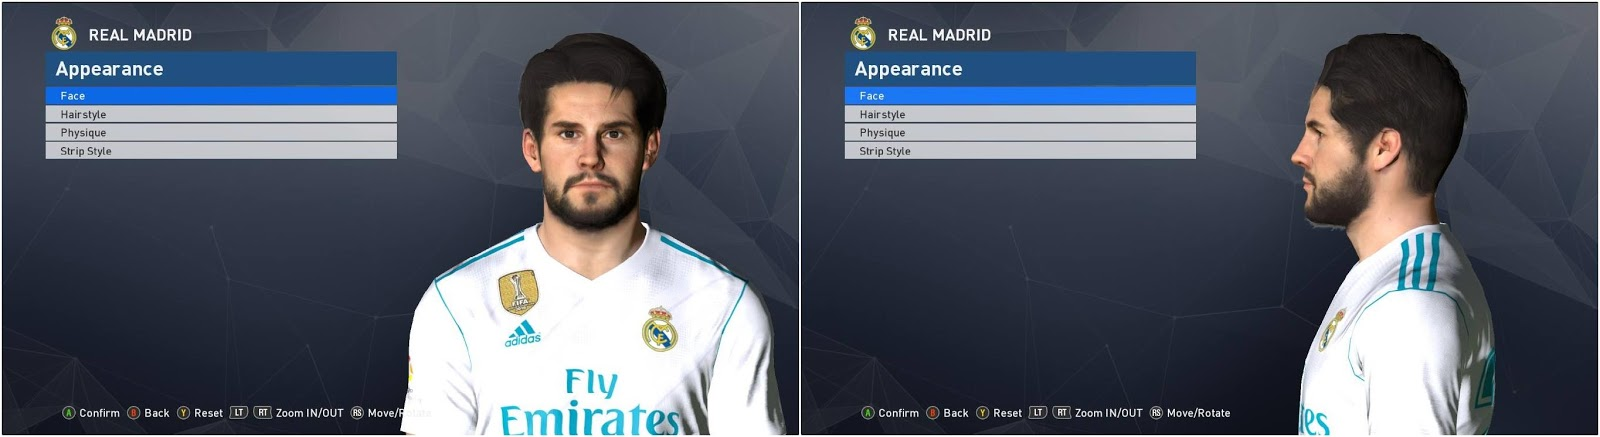 f67be4419b3 PES 2017 Isco Face Update 26 April 2018 by Ahmed El Shenawy